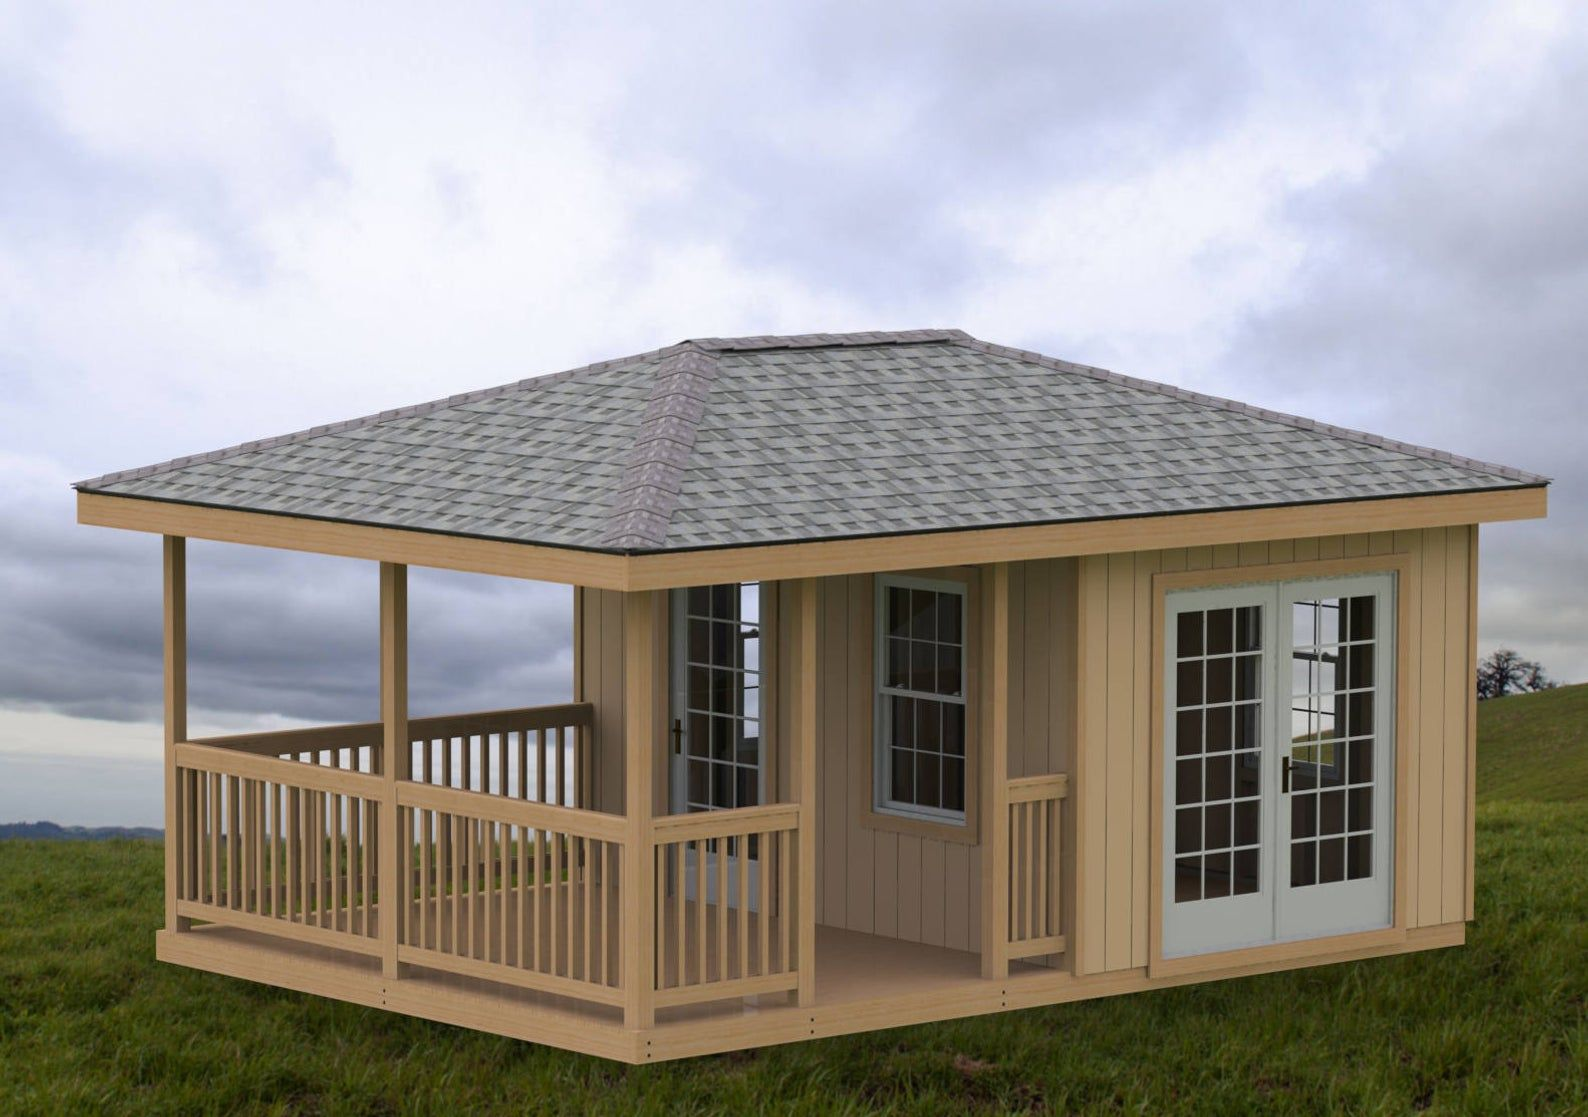 Garden Gazebo Man Cave She Shed Building Plans I Hip Roof 14 X 20 With Images Building A Shed Enclosed Gazebo Wood Shed Plans